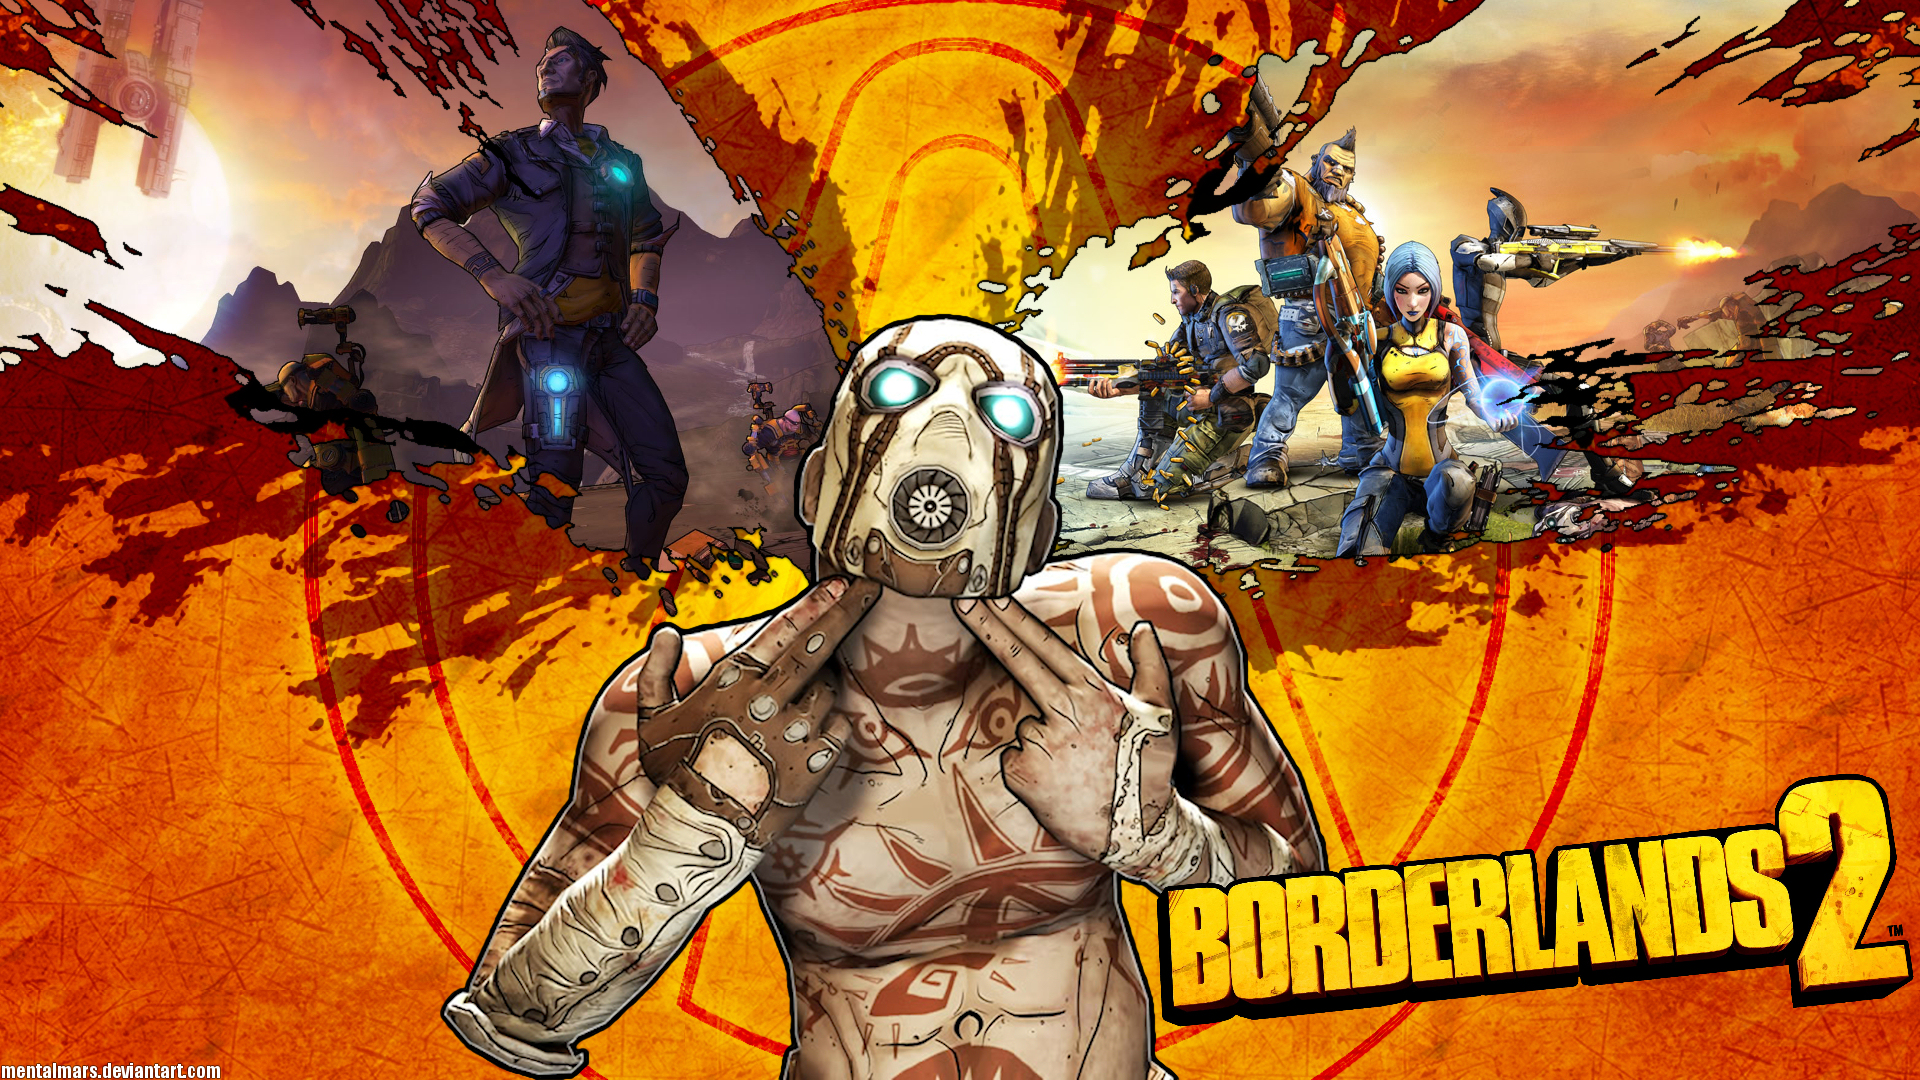 Borderlands 2 – 2K Games